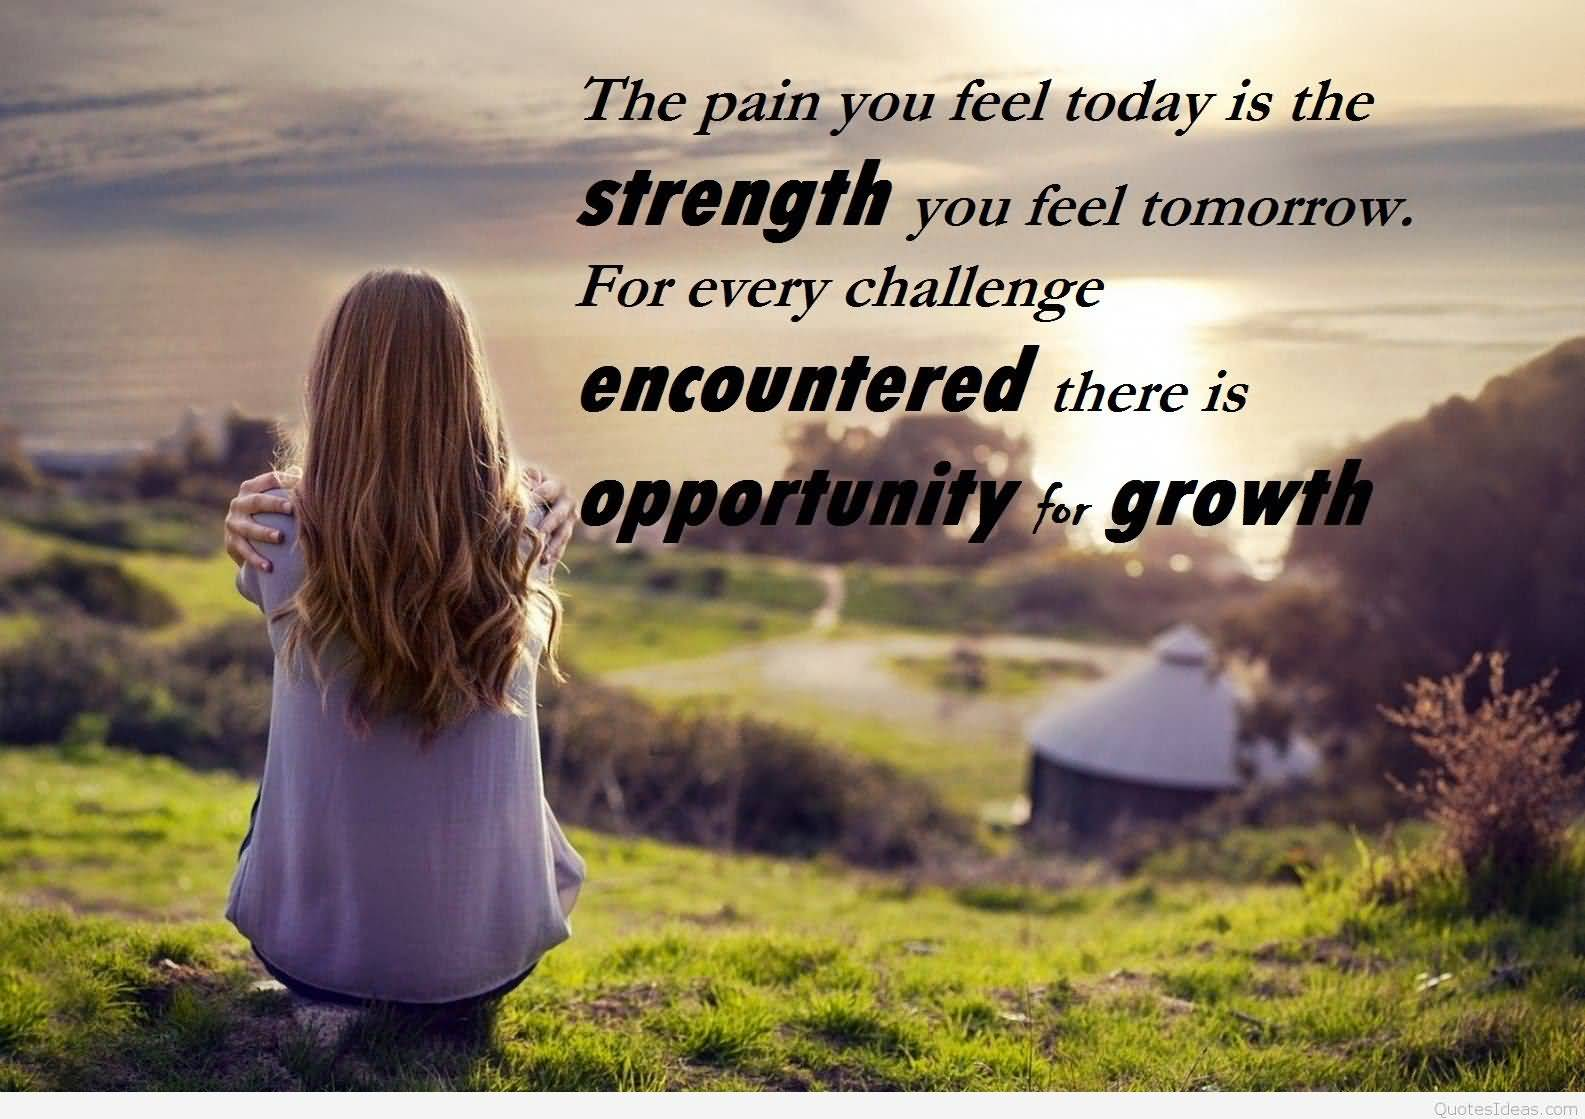 Inspirational Nature Quotes and Sayings The Pain You Feel